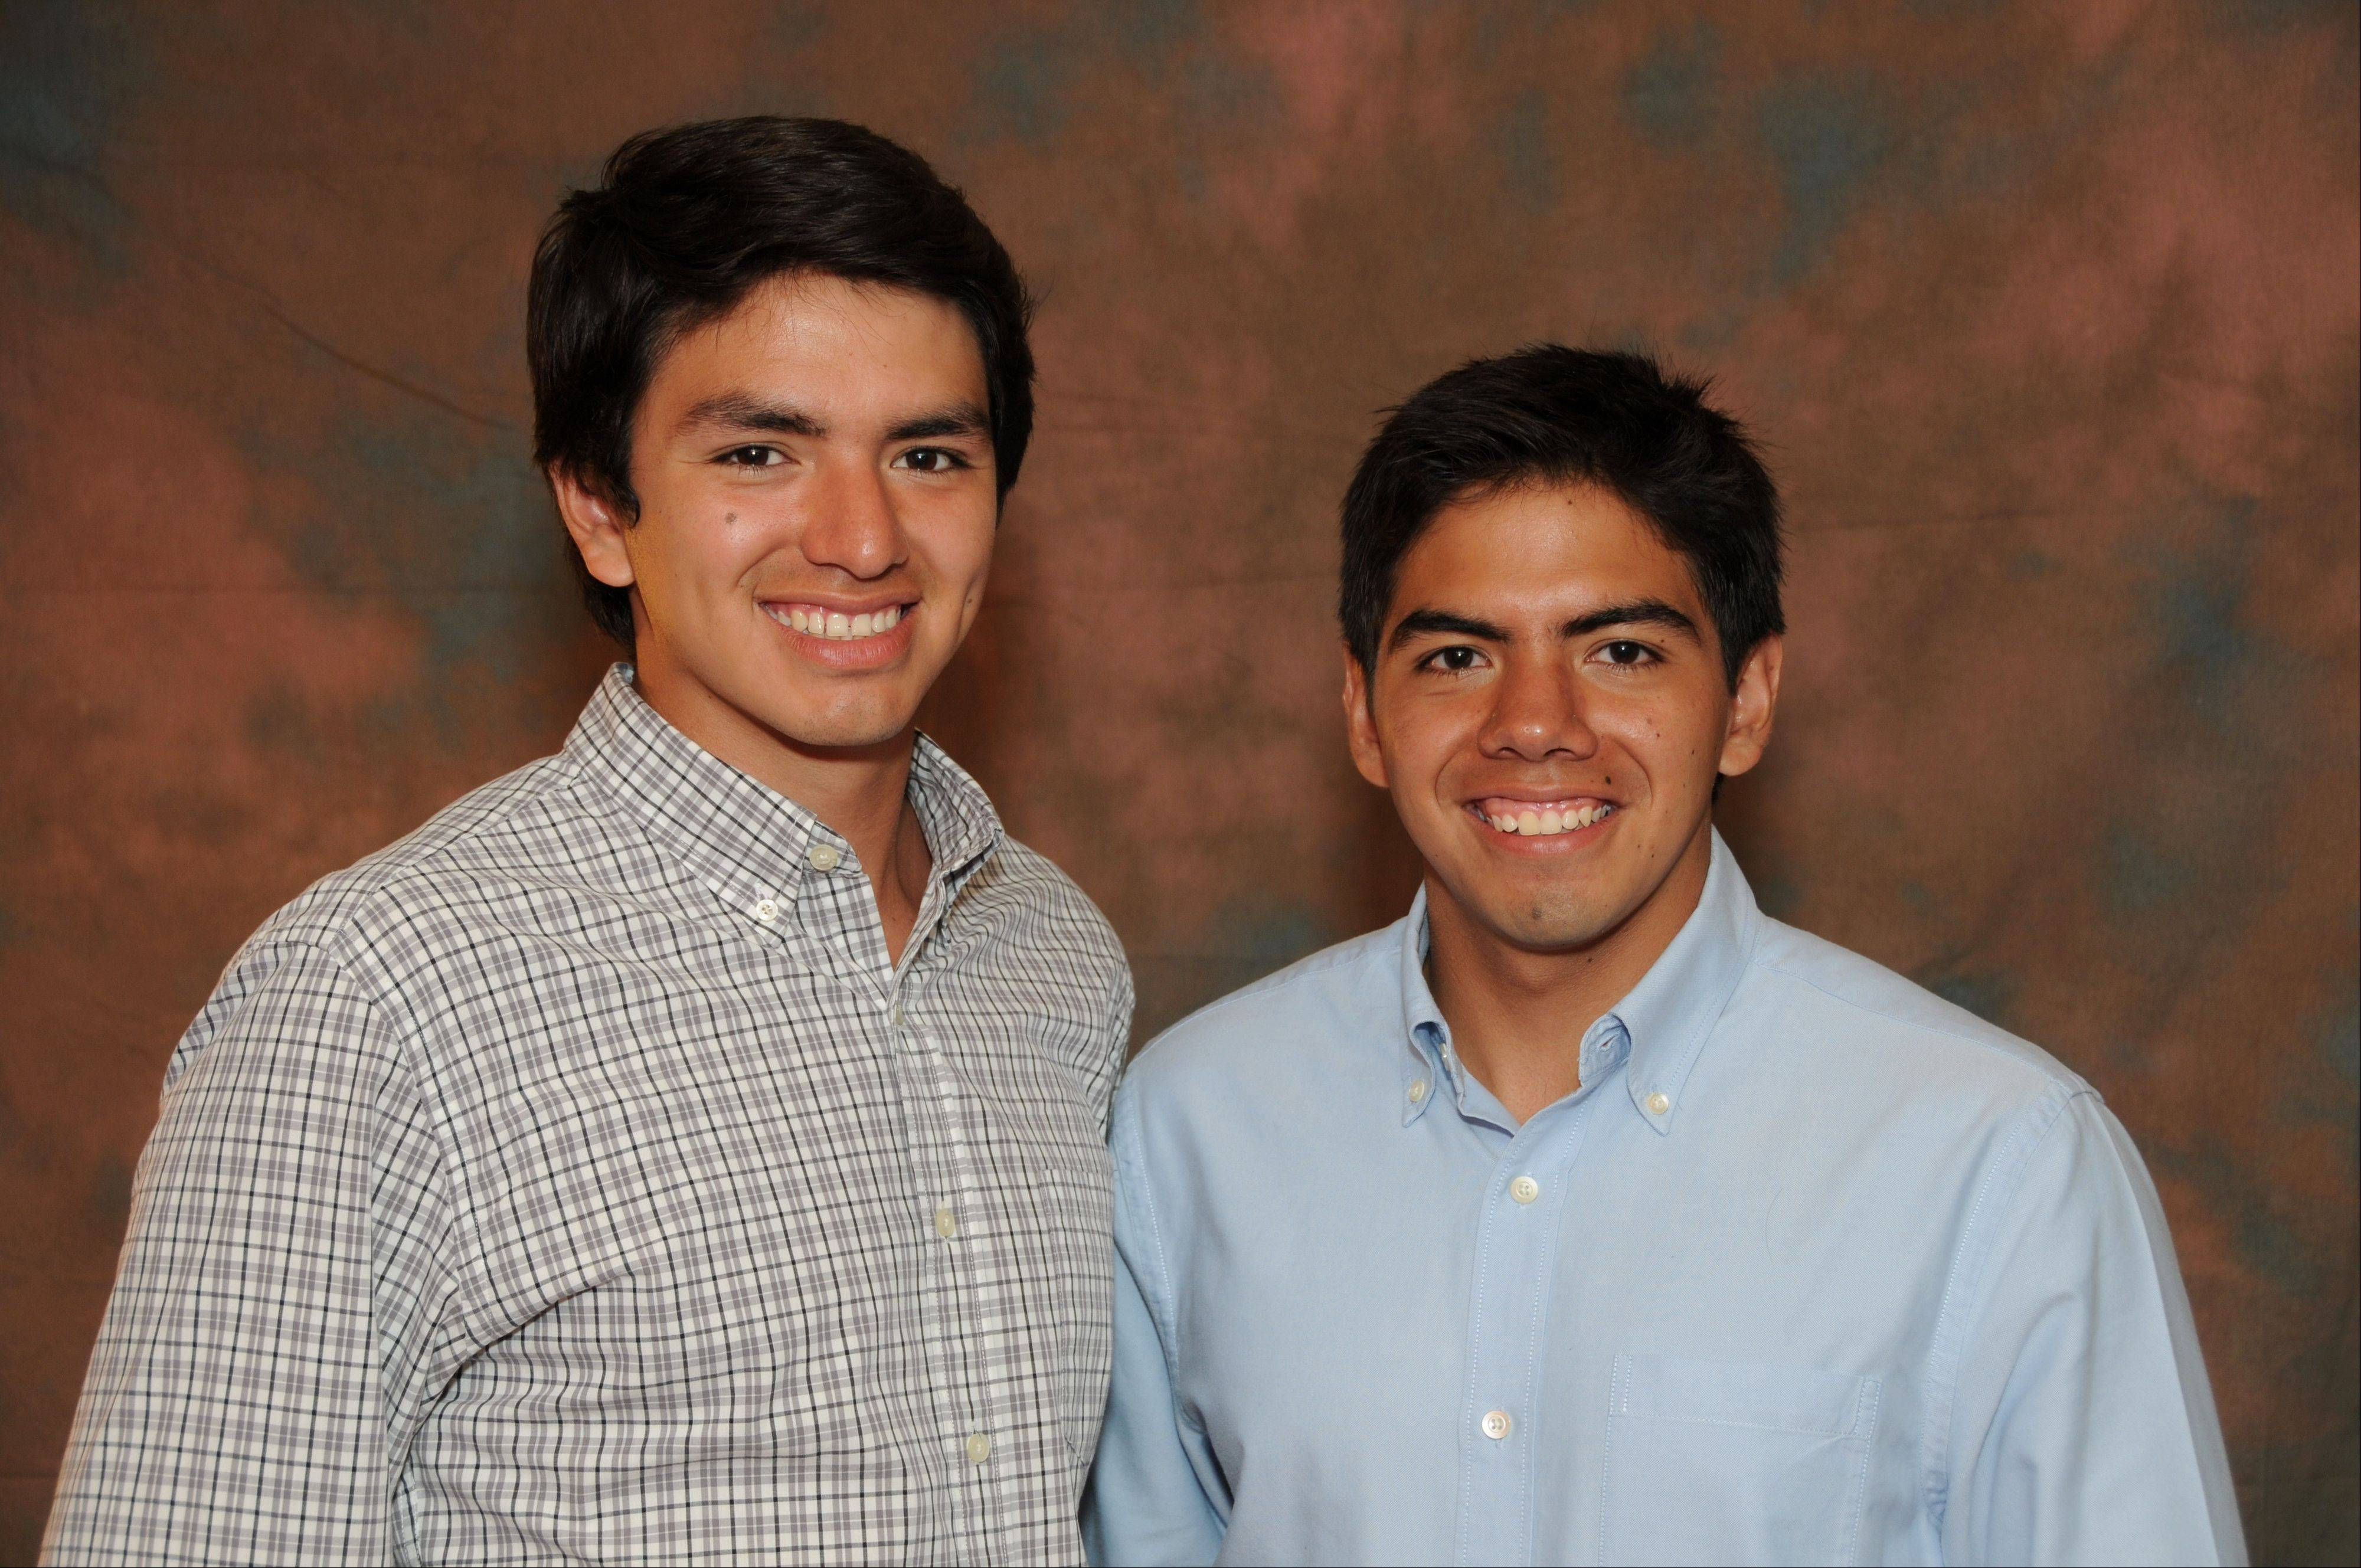 Carlos, right, and Rafael Robles